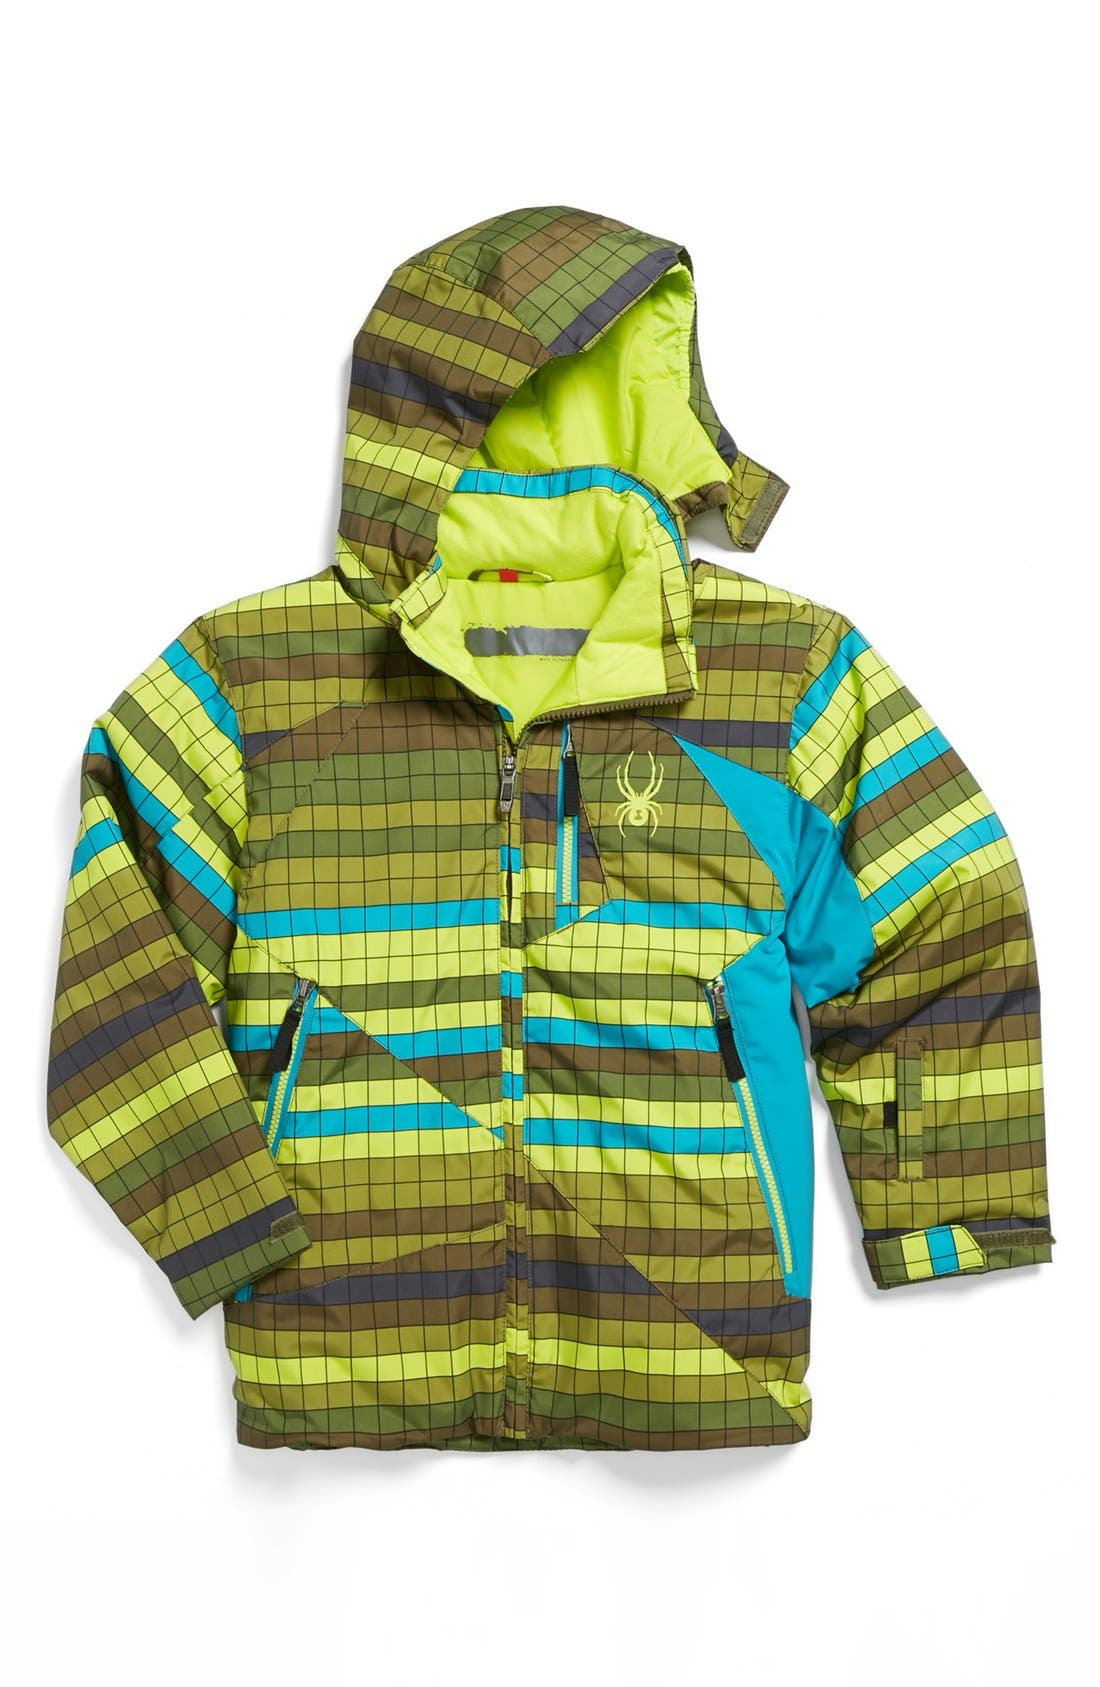 Alternate Image 1 Selected - Spyder 'Armageddon' Waterproof Snow Jacket (Little Boys)